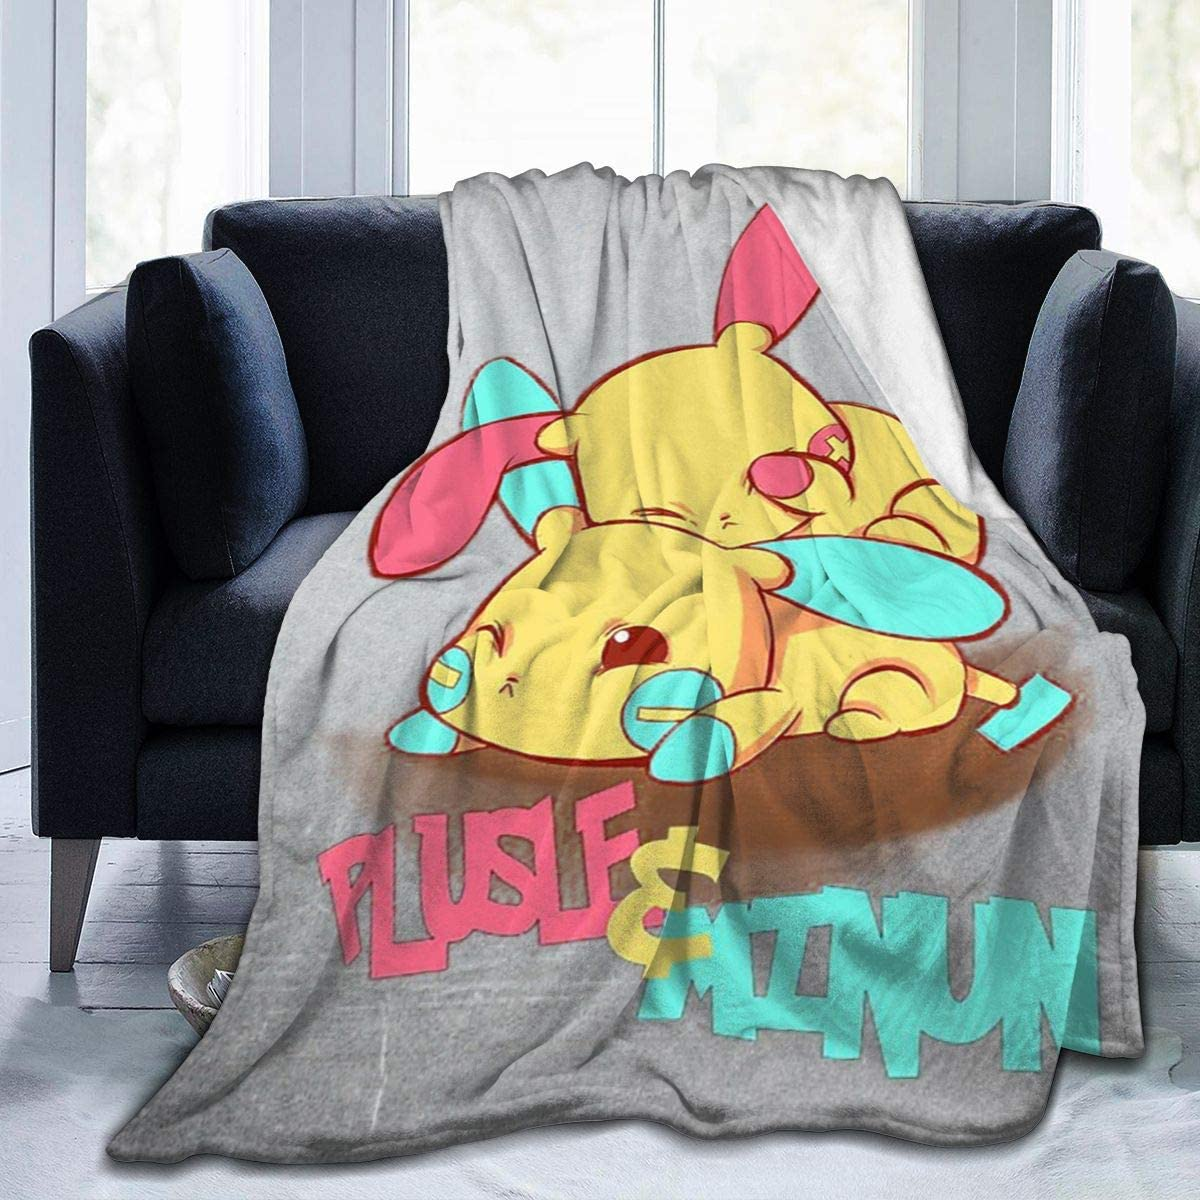 Poke-mon Plusle and Minun Fleece Blanket Ultra-Soft Lightweight All Seasons Fit Bed Couch Chair Office Flight and Outdoors